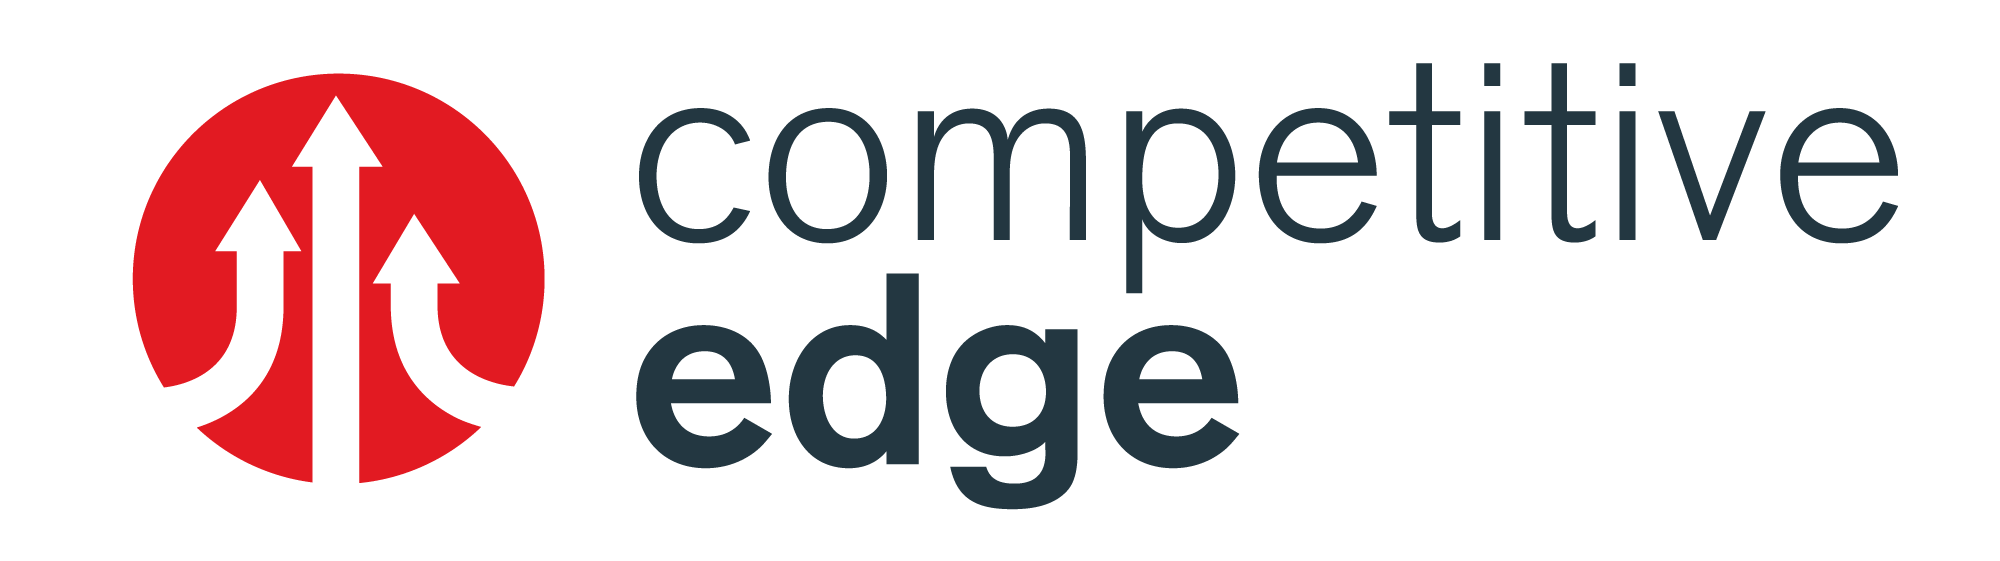 COMPETITIVE EDGE logo_UK.png